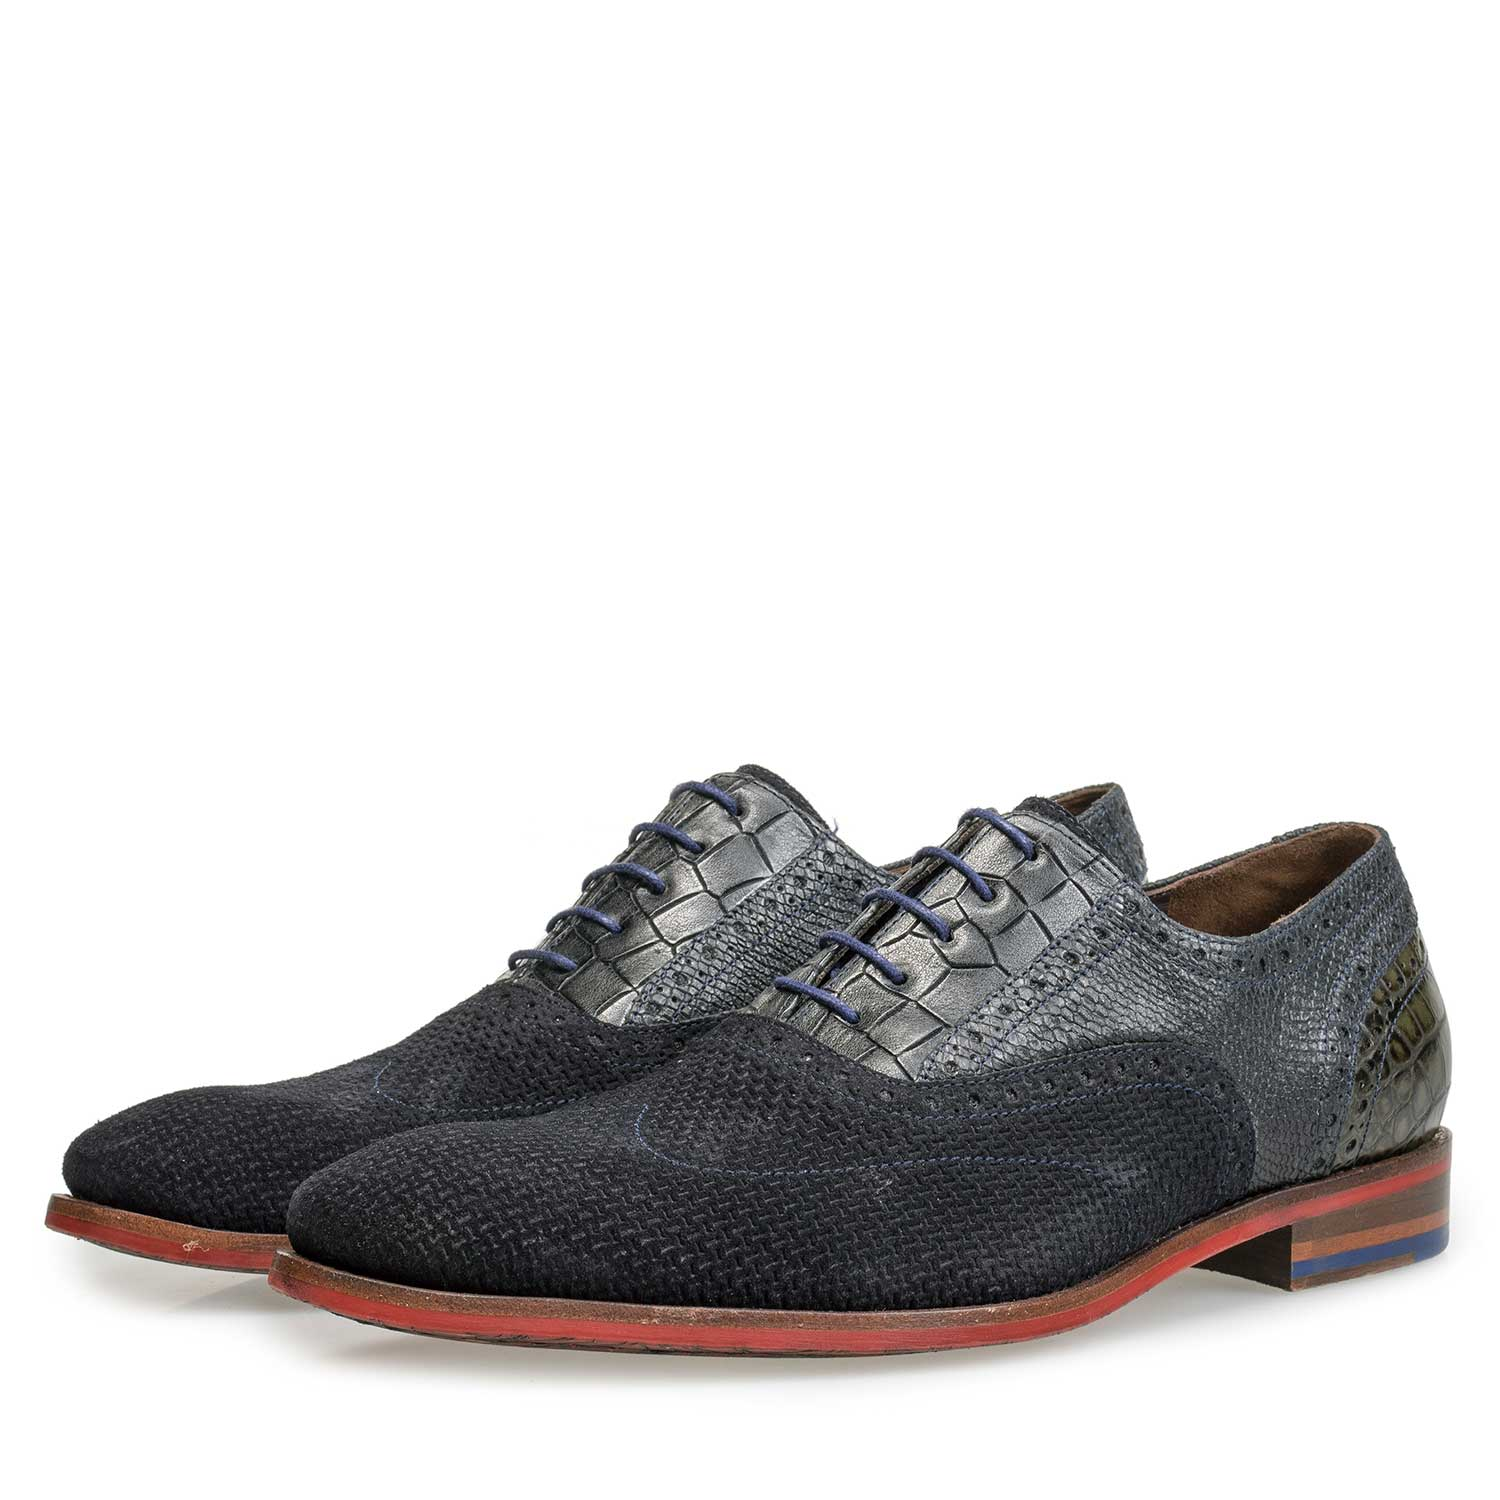 19114/28 - Blue calf's suede leather lace shoe with pattern